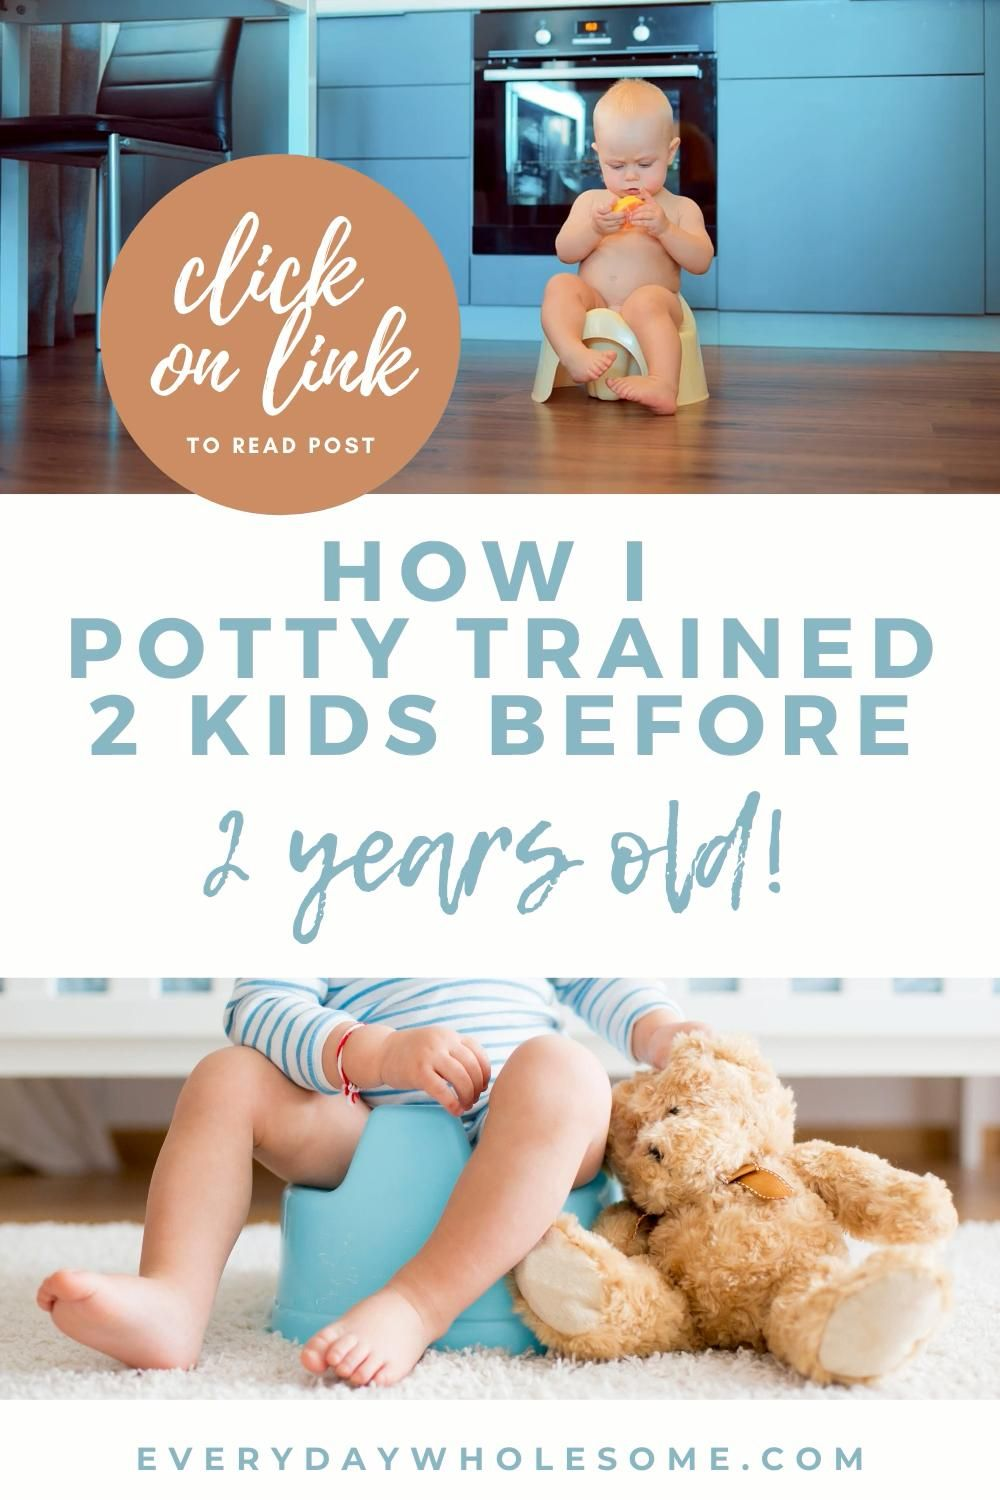 Potty training boys and girls stubborn early under